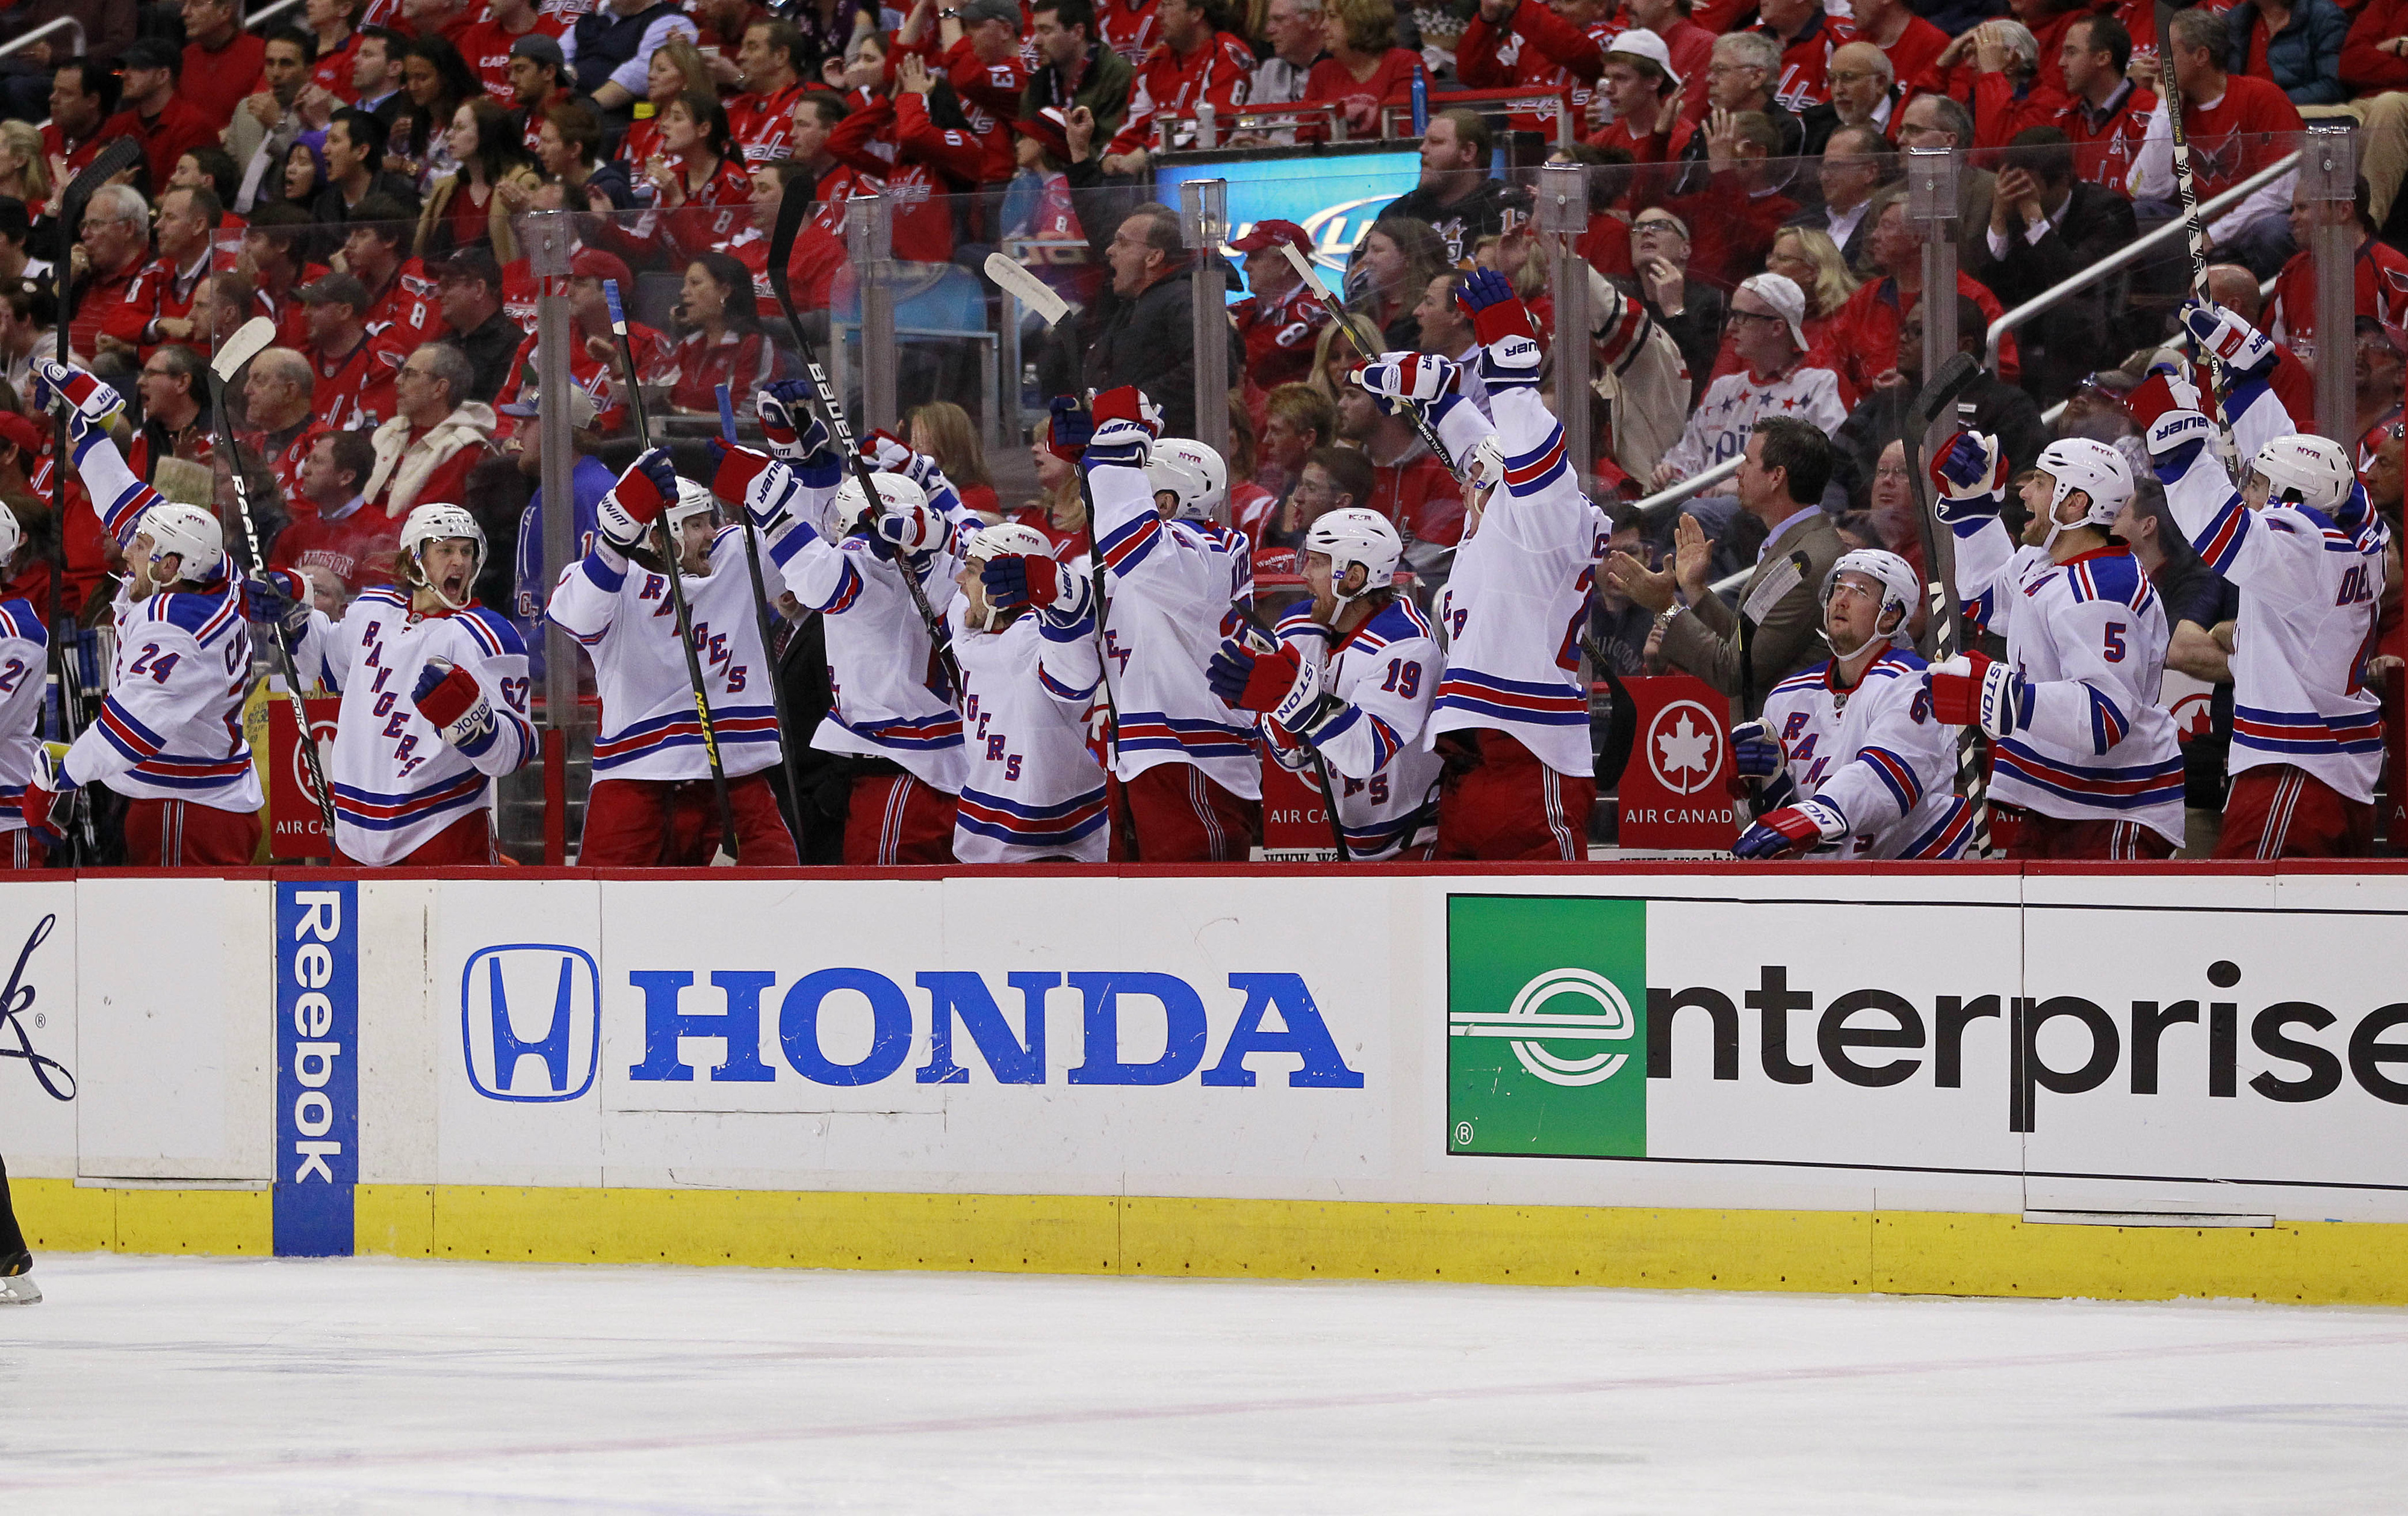 Rangers vs. Capitals Game 7 recap: Capitals go quietly into the night